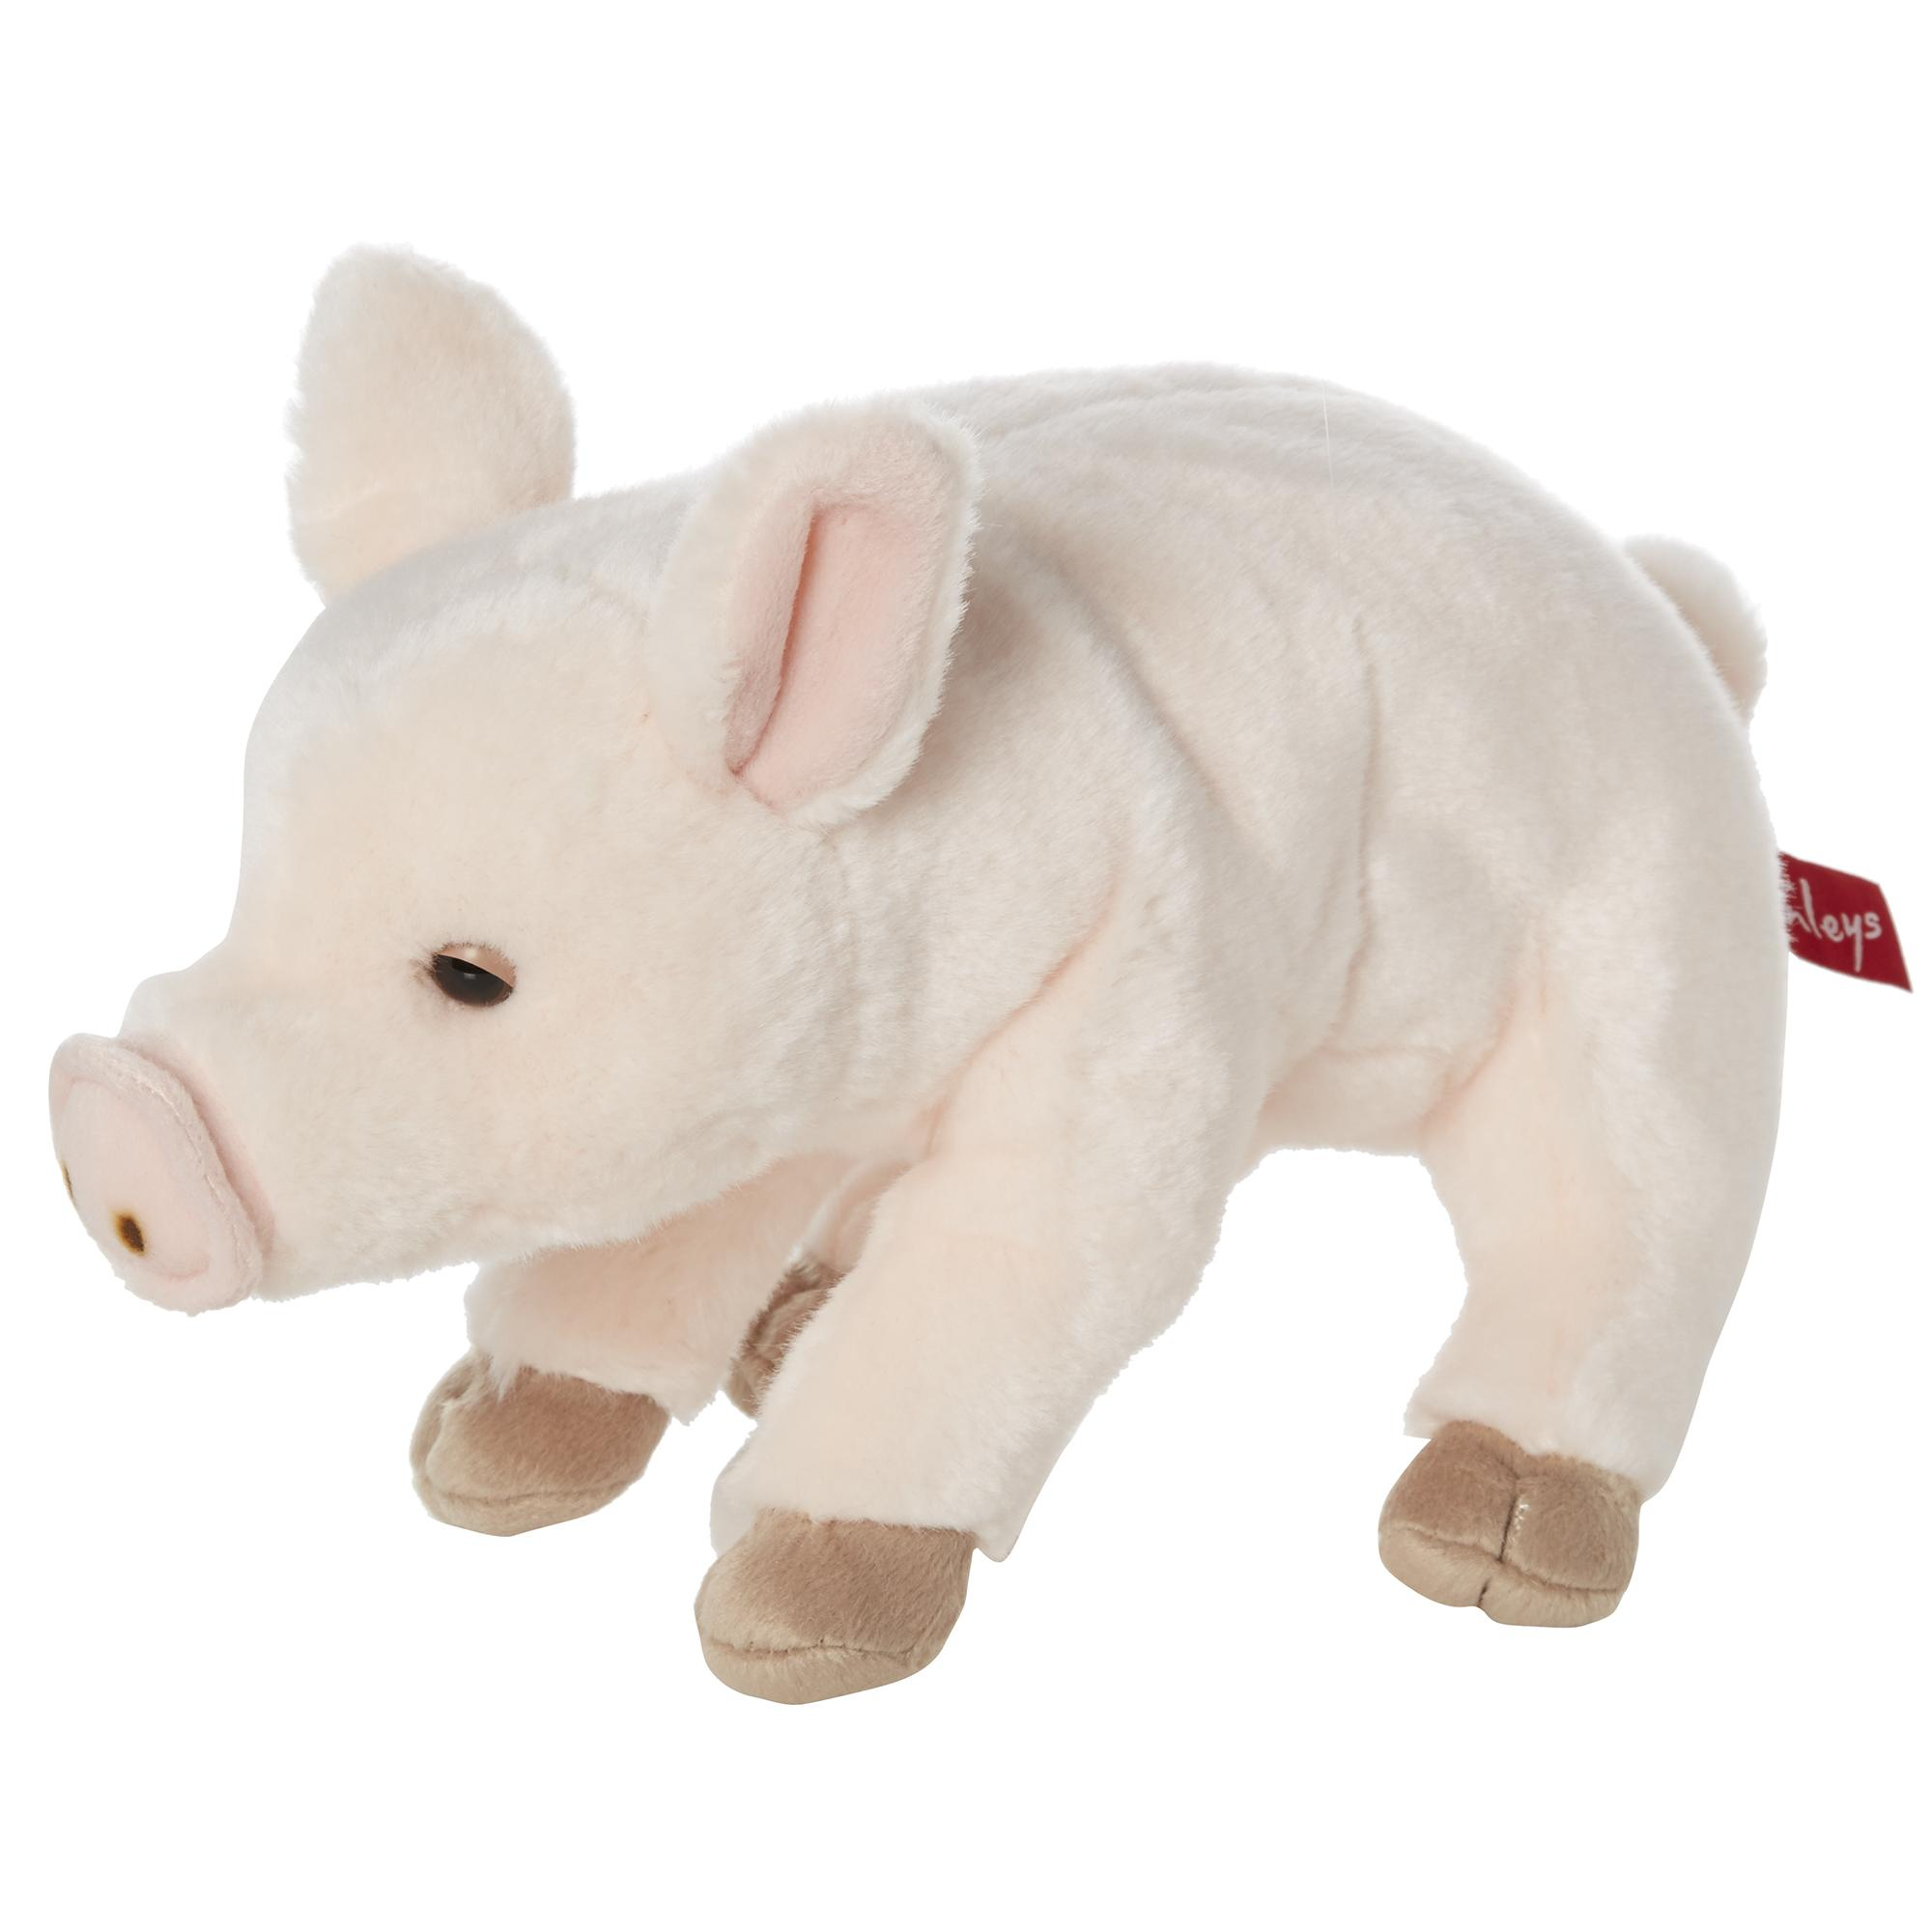 Hamleys Pig Soft Toy - £18.00 - Hamleys for Toys and Games